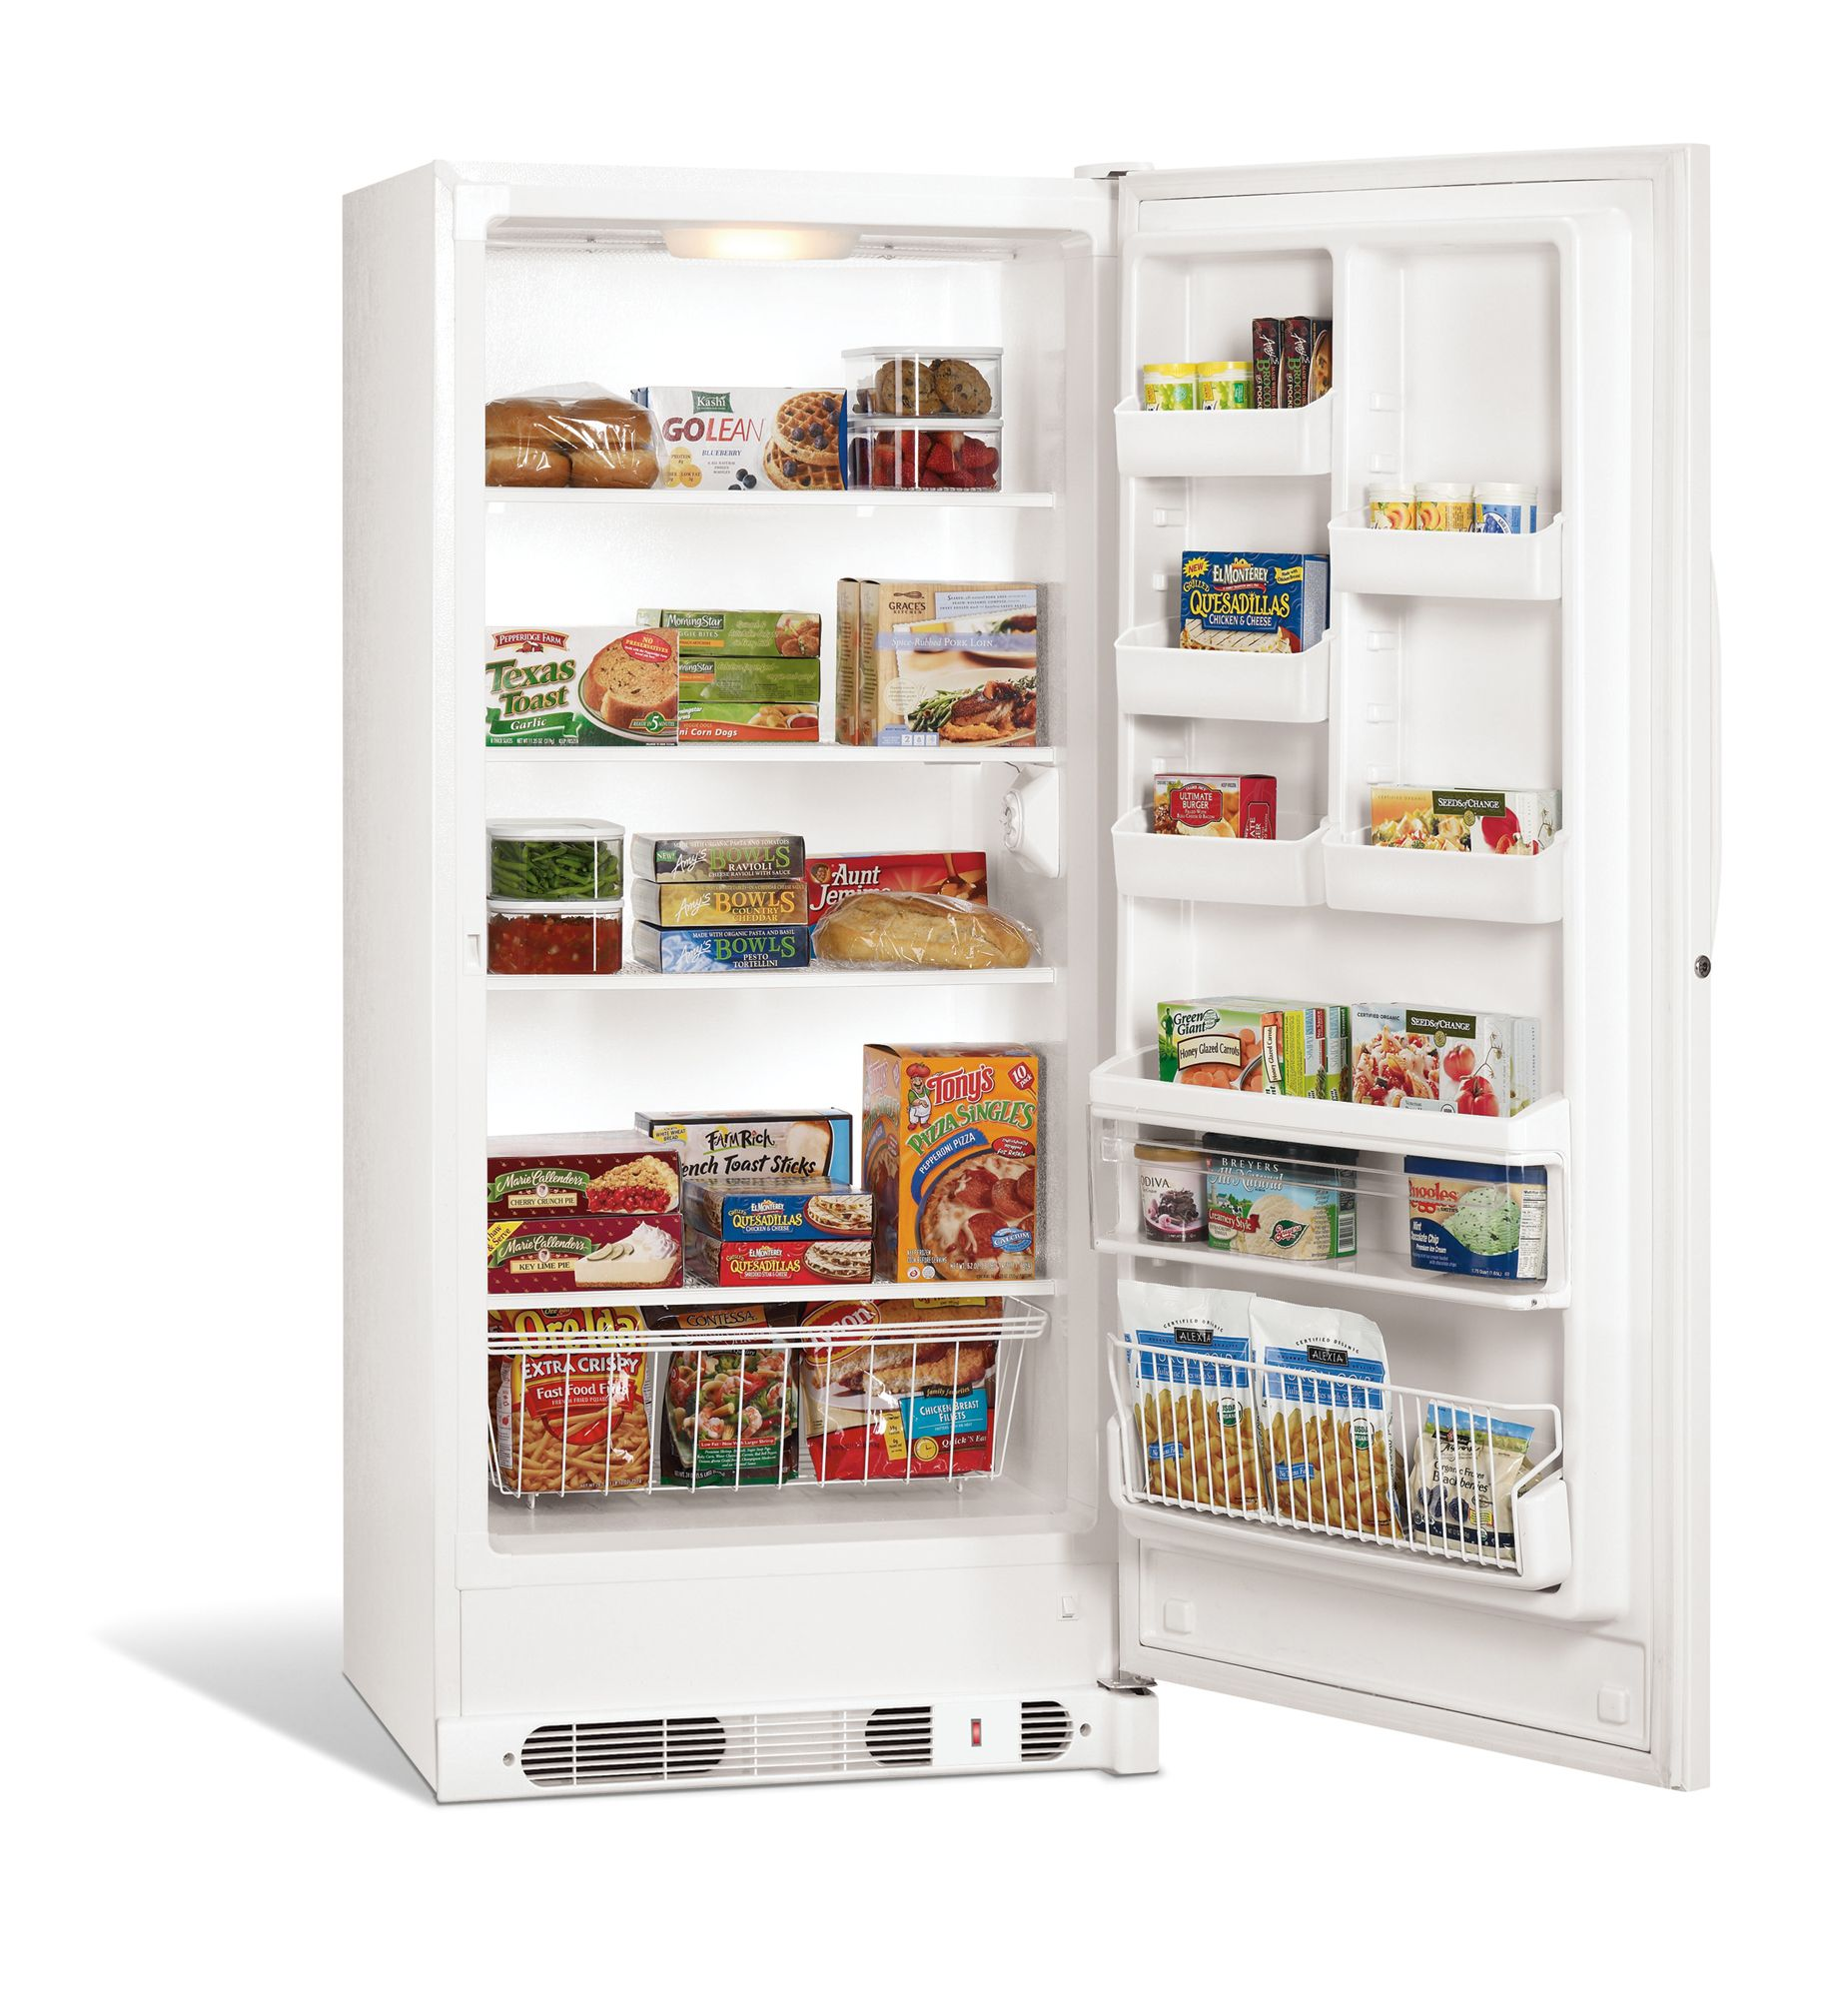 Frigidaire 20.6 cu. ft. Upright Freezer - White